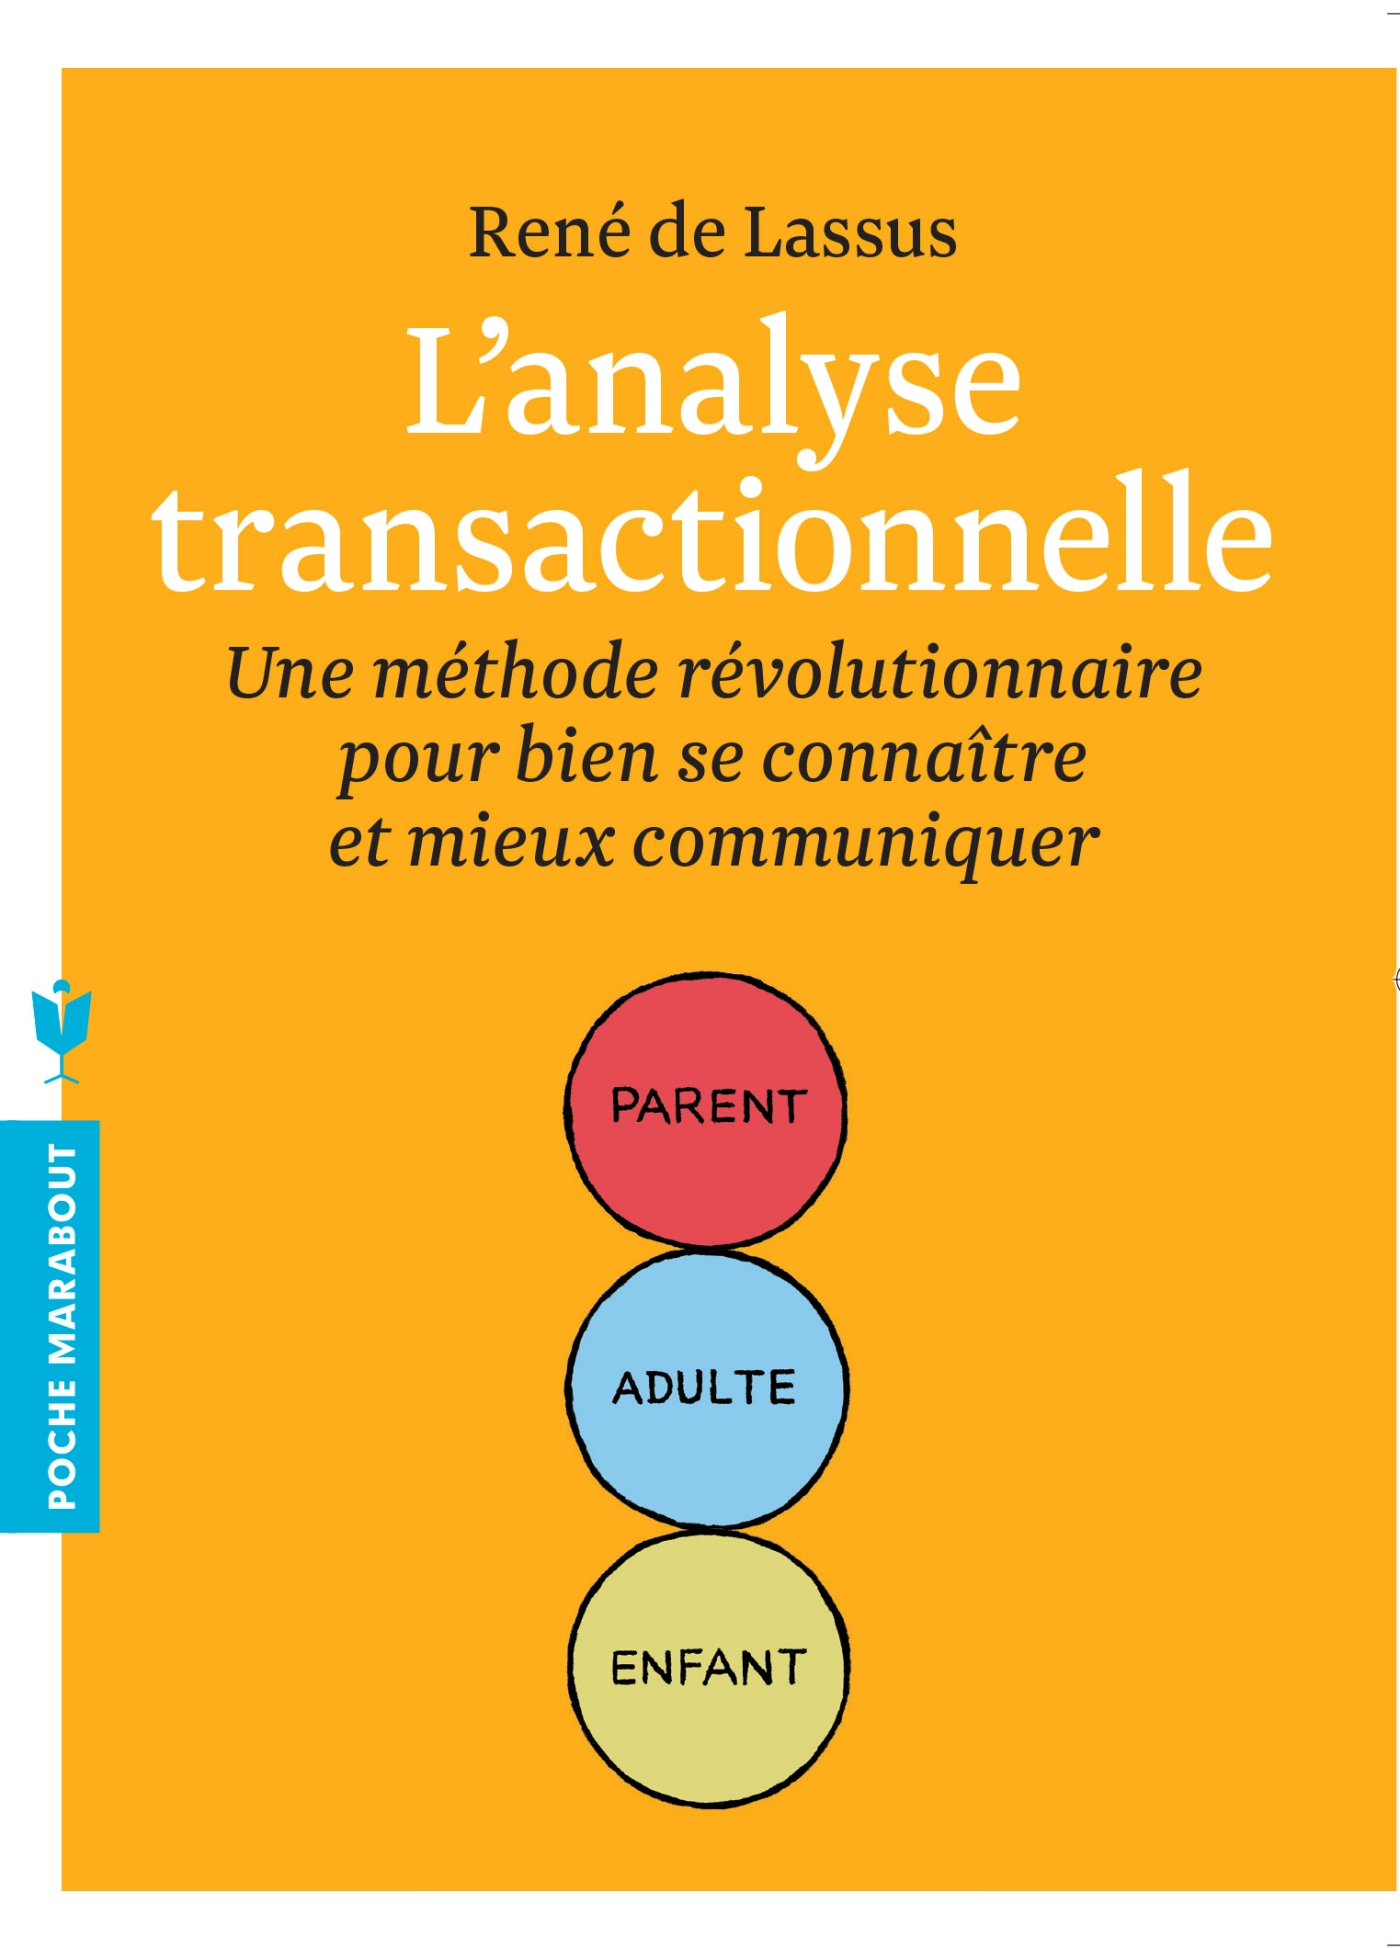 L'analyse transactionelle